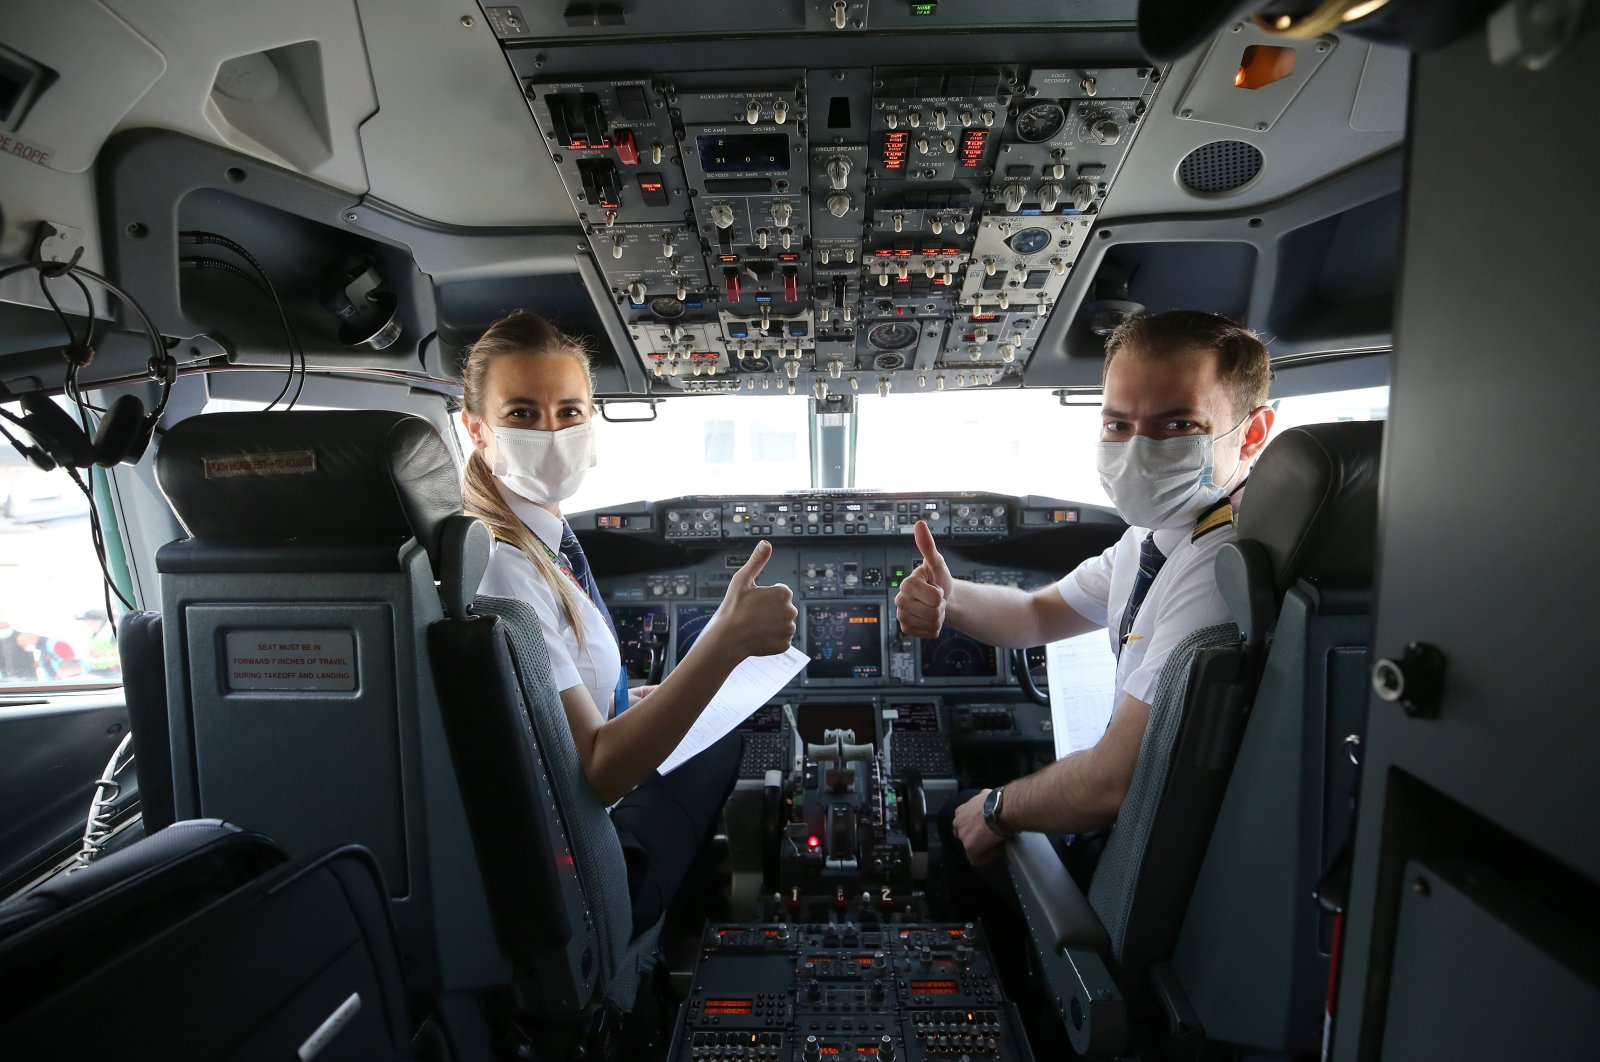 Turkish Airlines pilots Selin Demirli (L) and Zafer Doğukan conduct a special flight from Istanbul to the Black Sea province of Samsun to commemorate the start of the Turkish national struggle 101 years ago, May 19, 2020. (AA Photo)